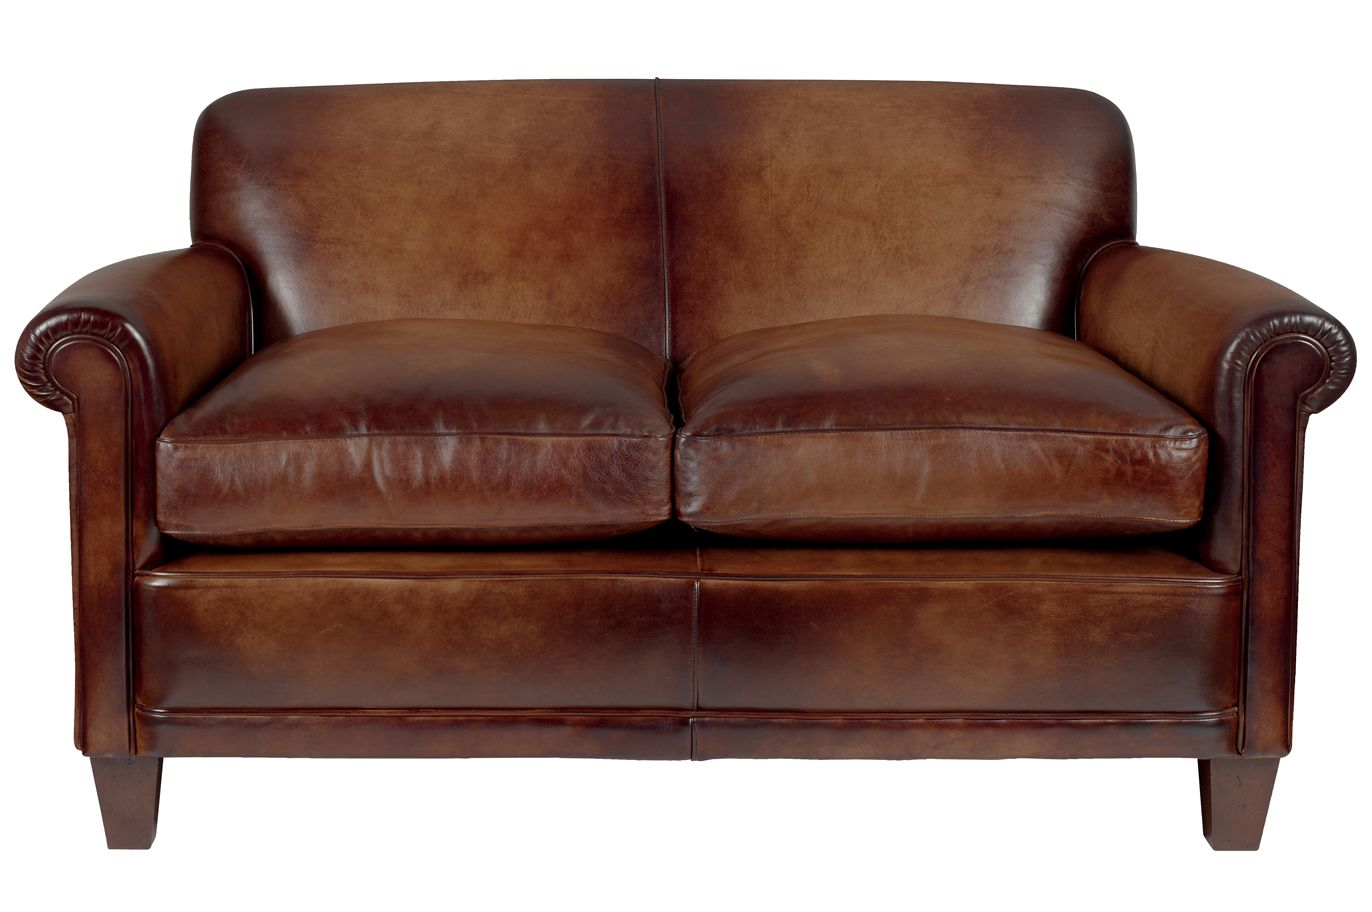 Burlington Leather Large 2 Seater Sofa Laura Ashley Made To Order Sofas For Small Spaces Small Space Sectional Sofa Small Leather Sofa